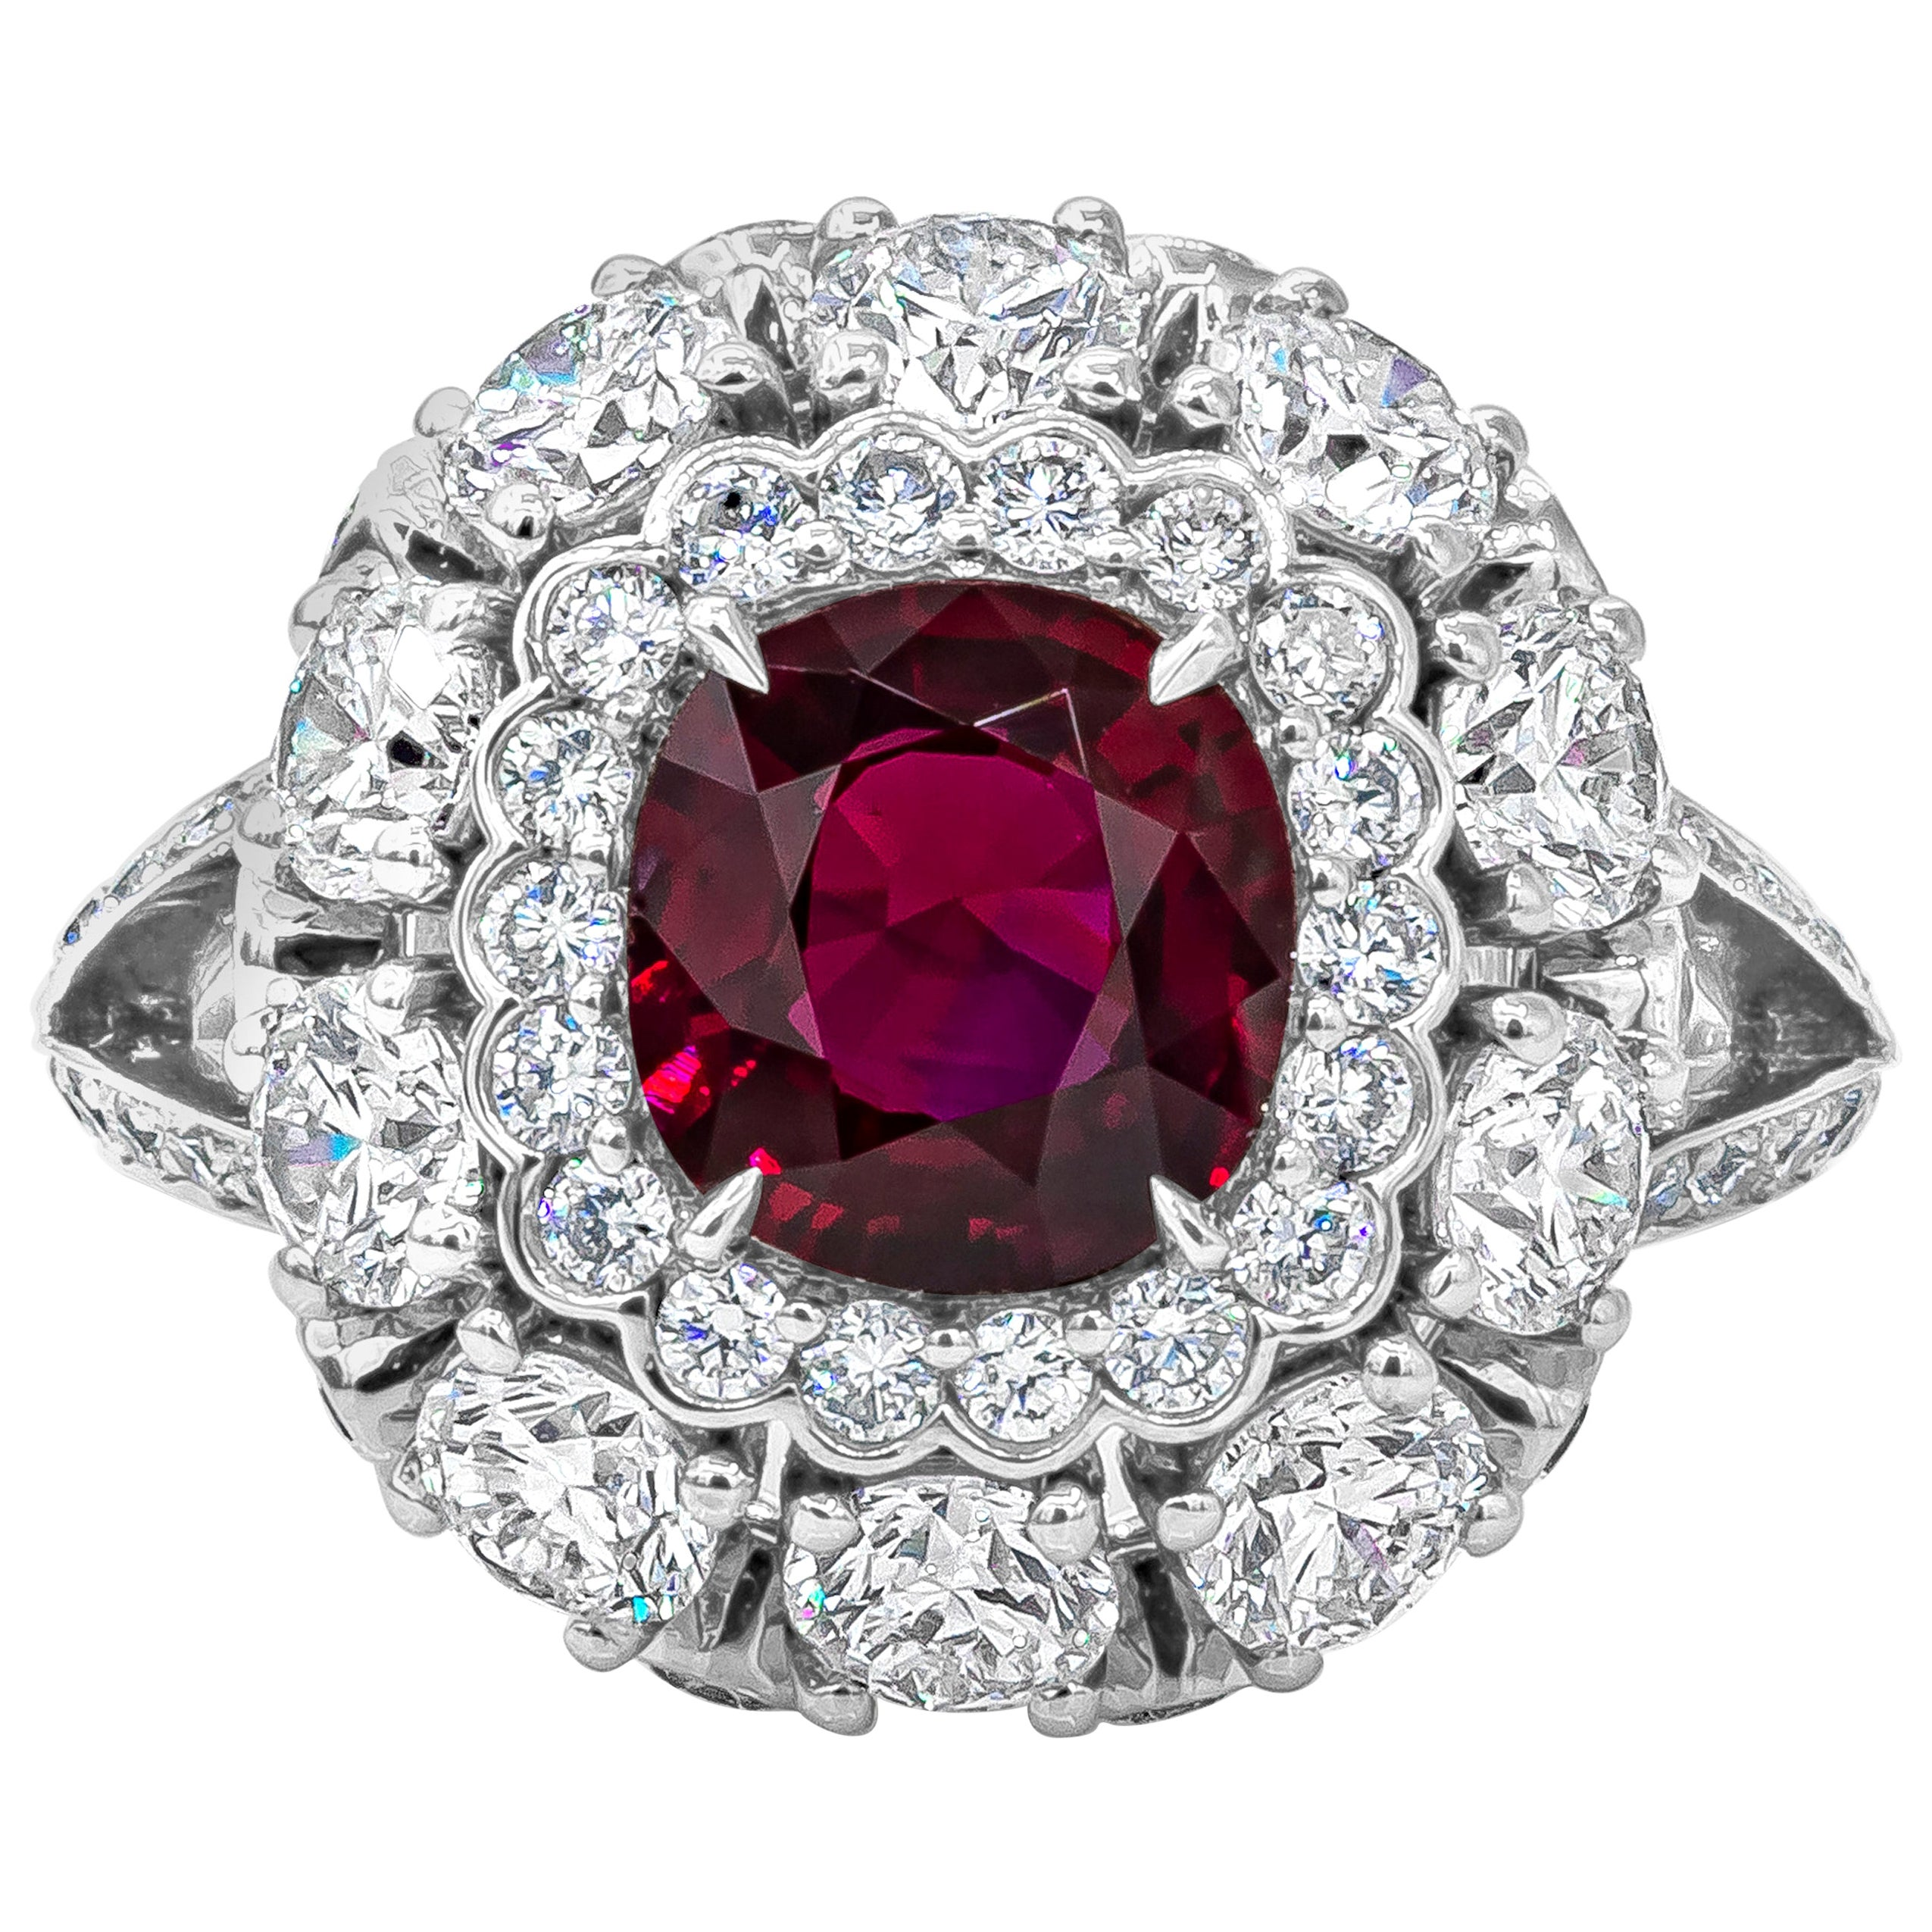 AGL Certified No-Heat Burmese Ruby and Diamond Halo Engagement Ring